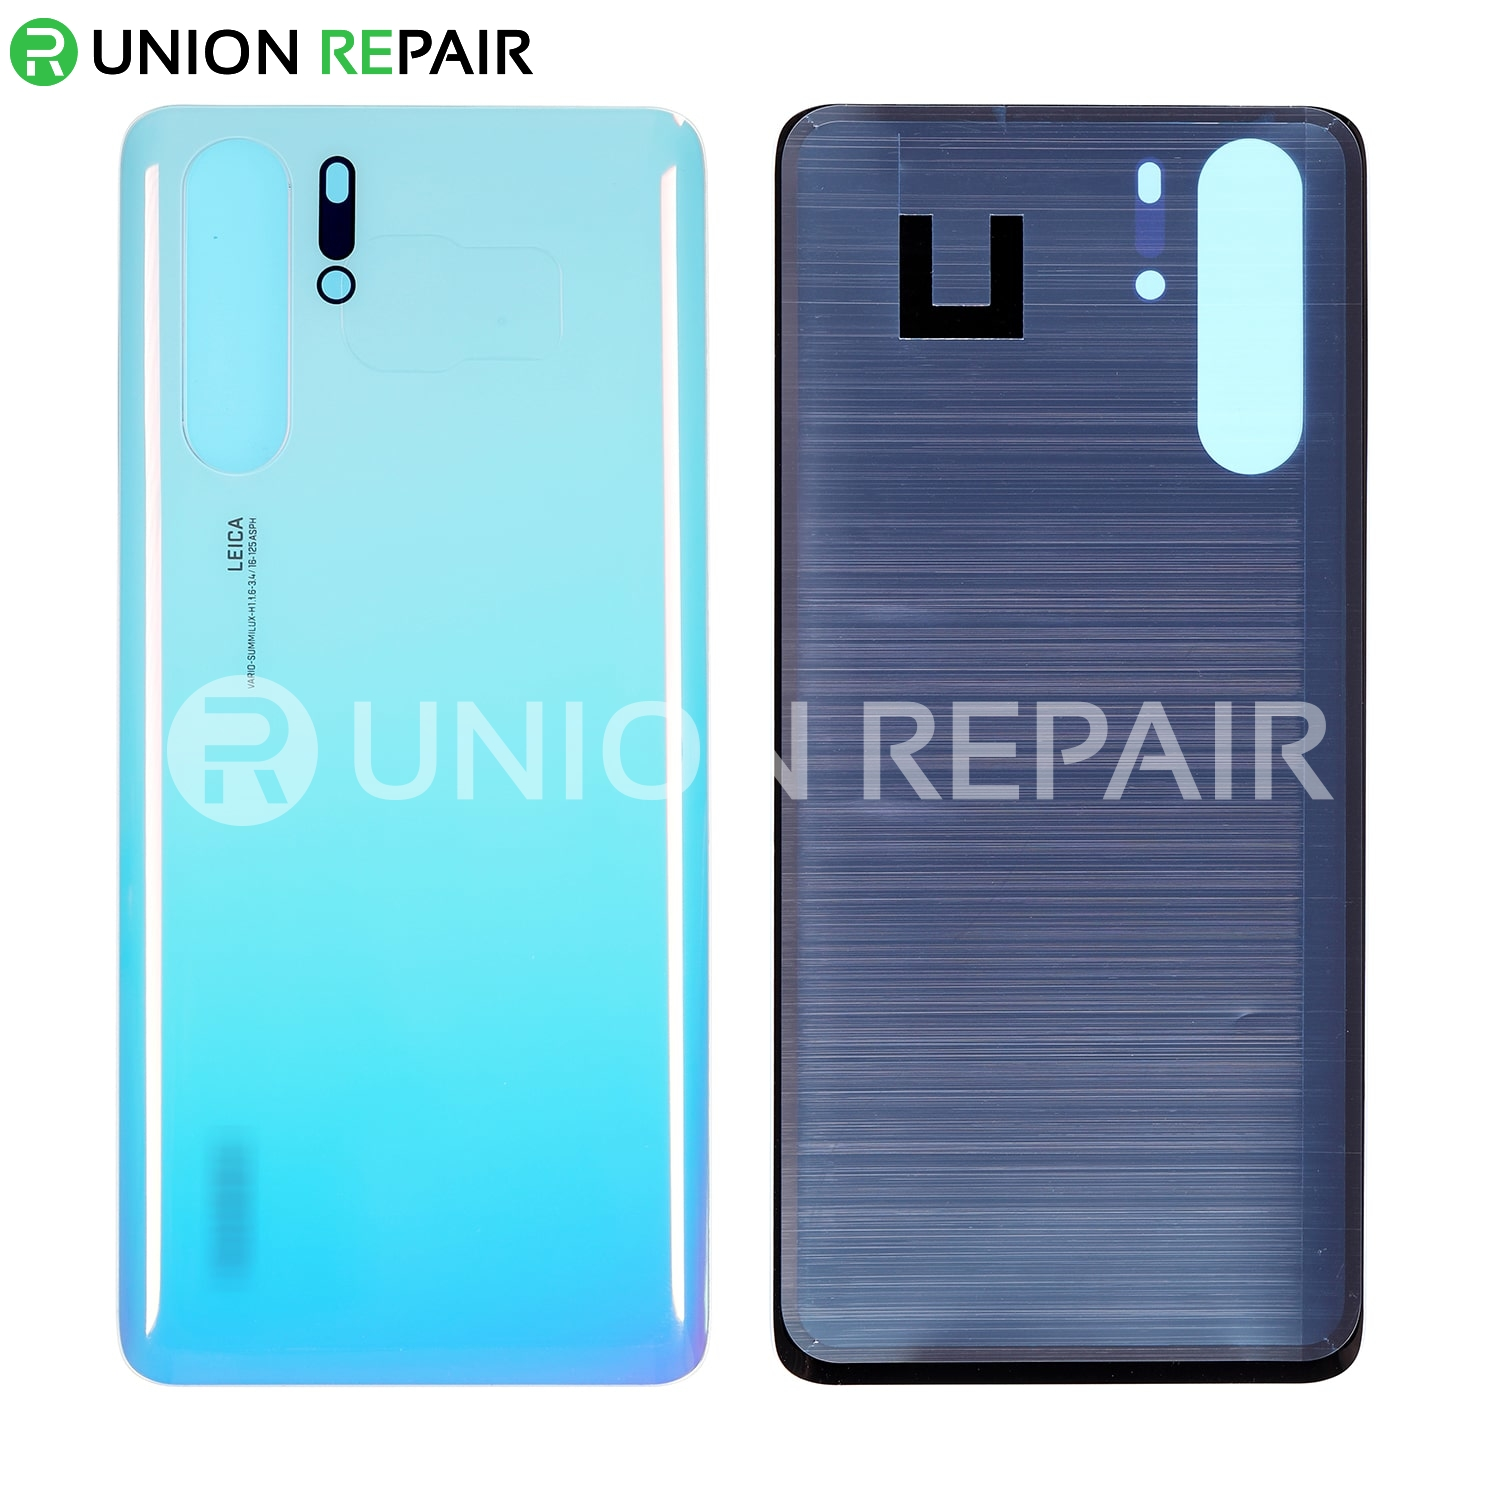 Replacement for Huawei P30 Pro Battery Door - Breathing Crystal